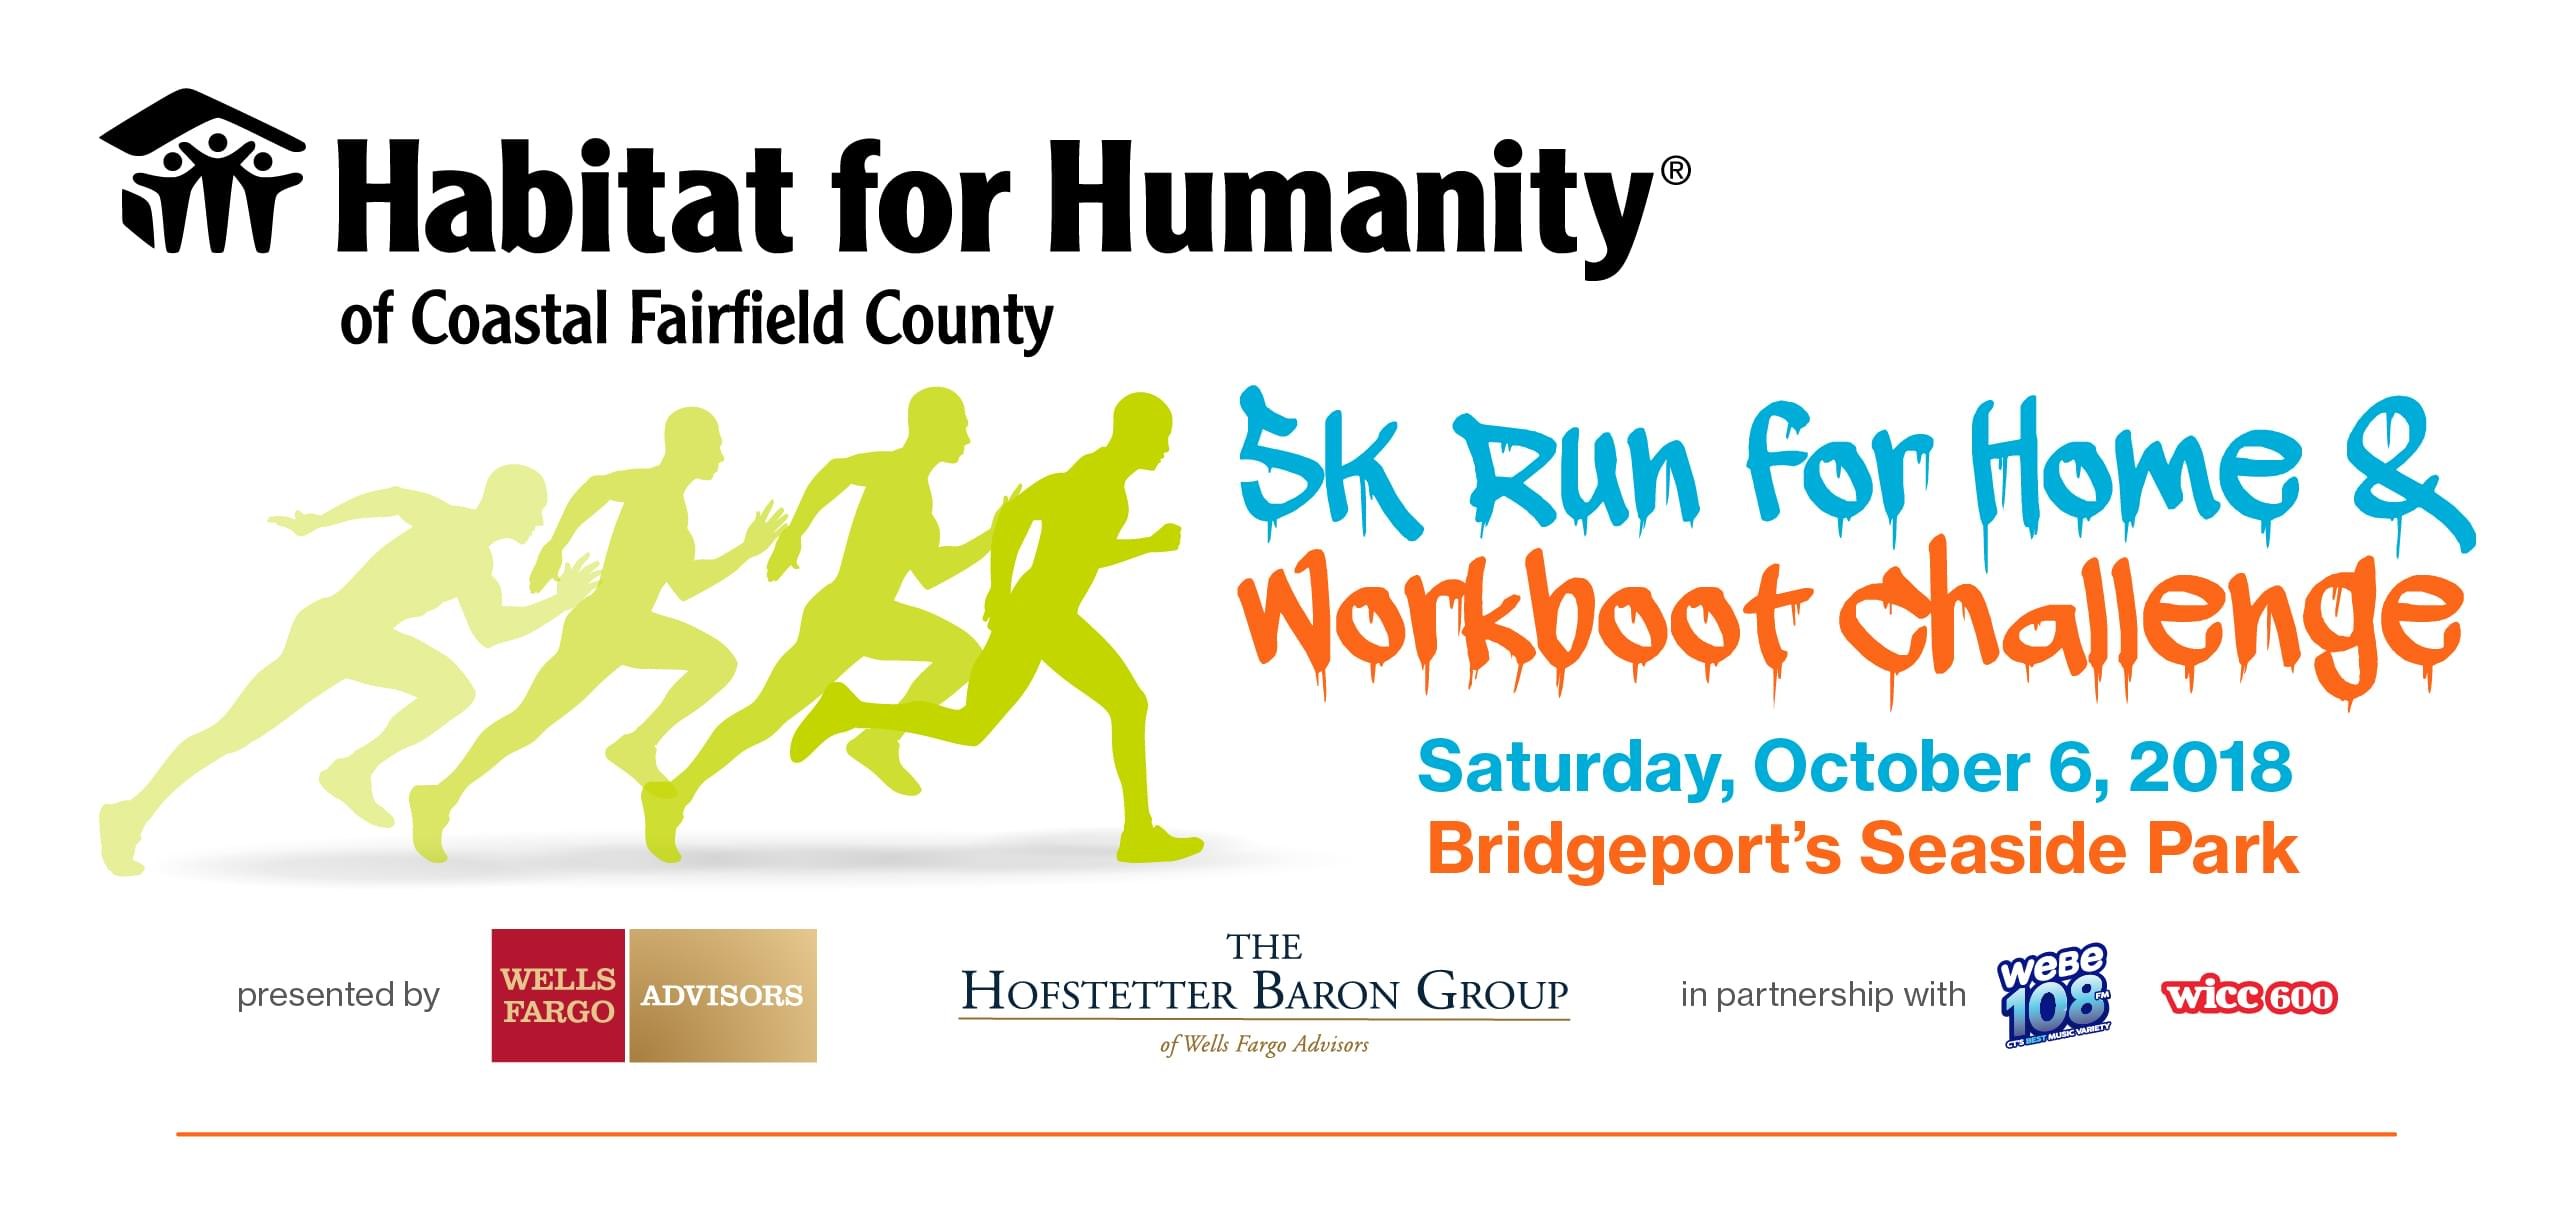 Habitat For Humanity 5k Run for Home and WorkBoot Challenge